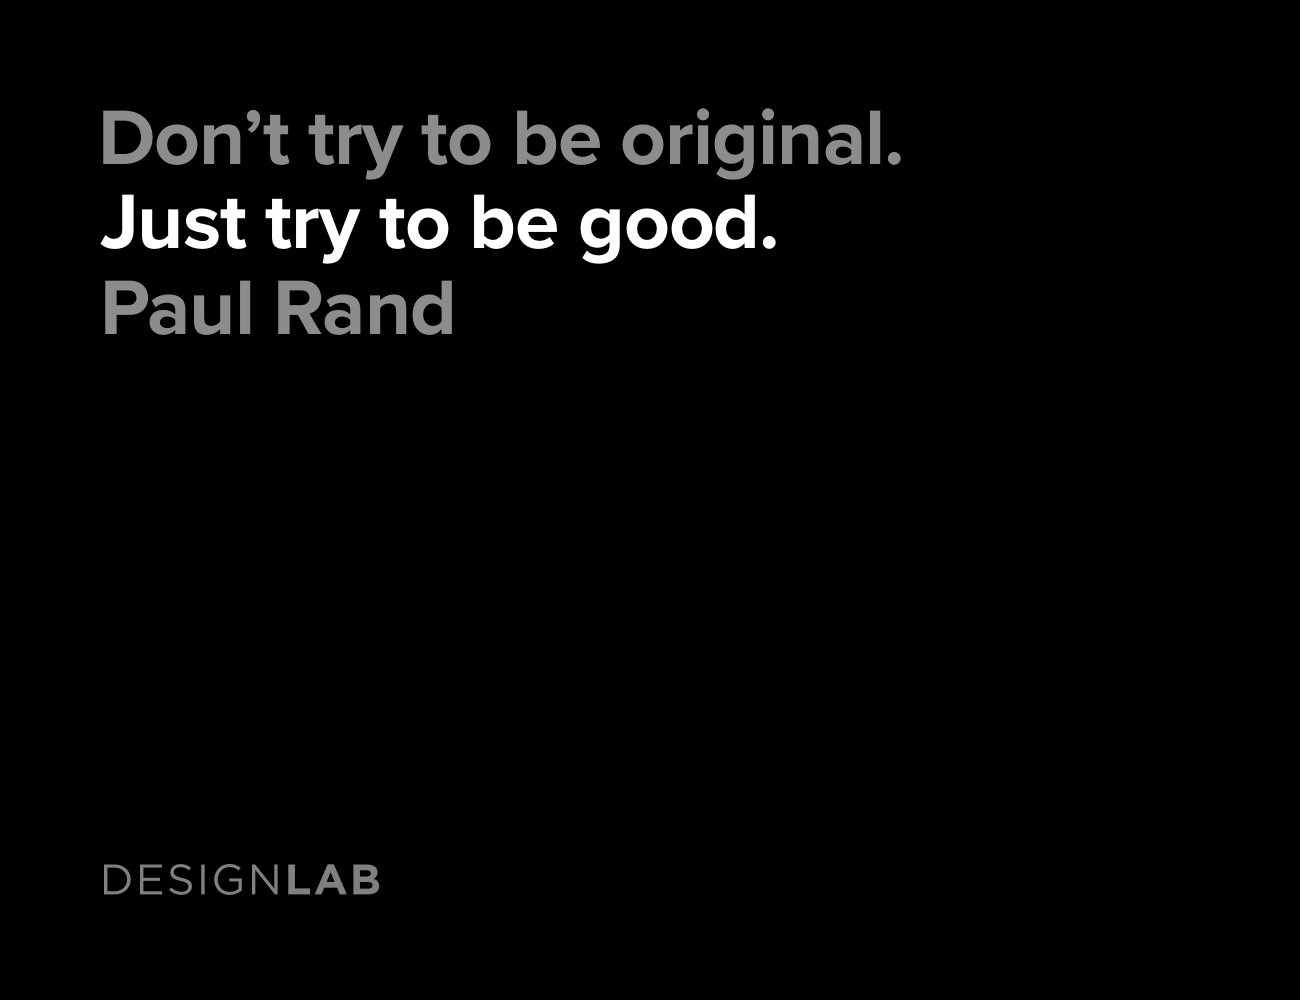 Don't try to be original. Just try to be good. Paul Rand